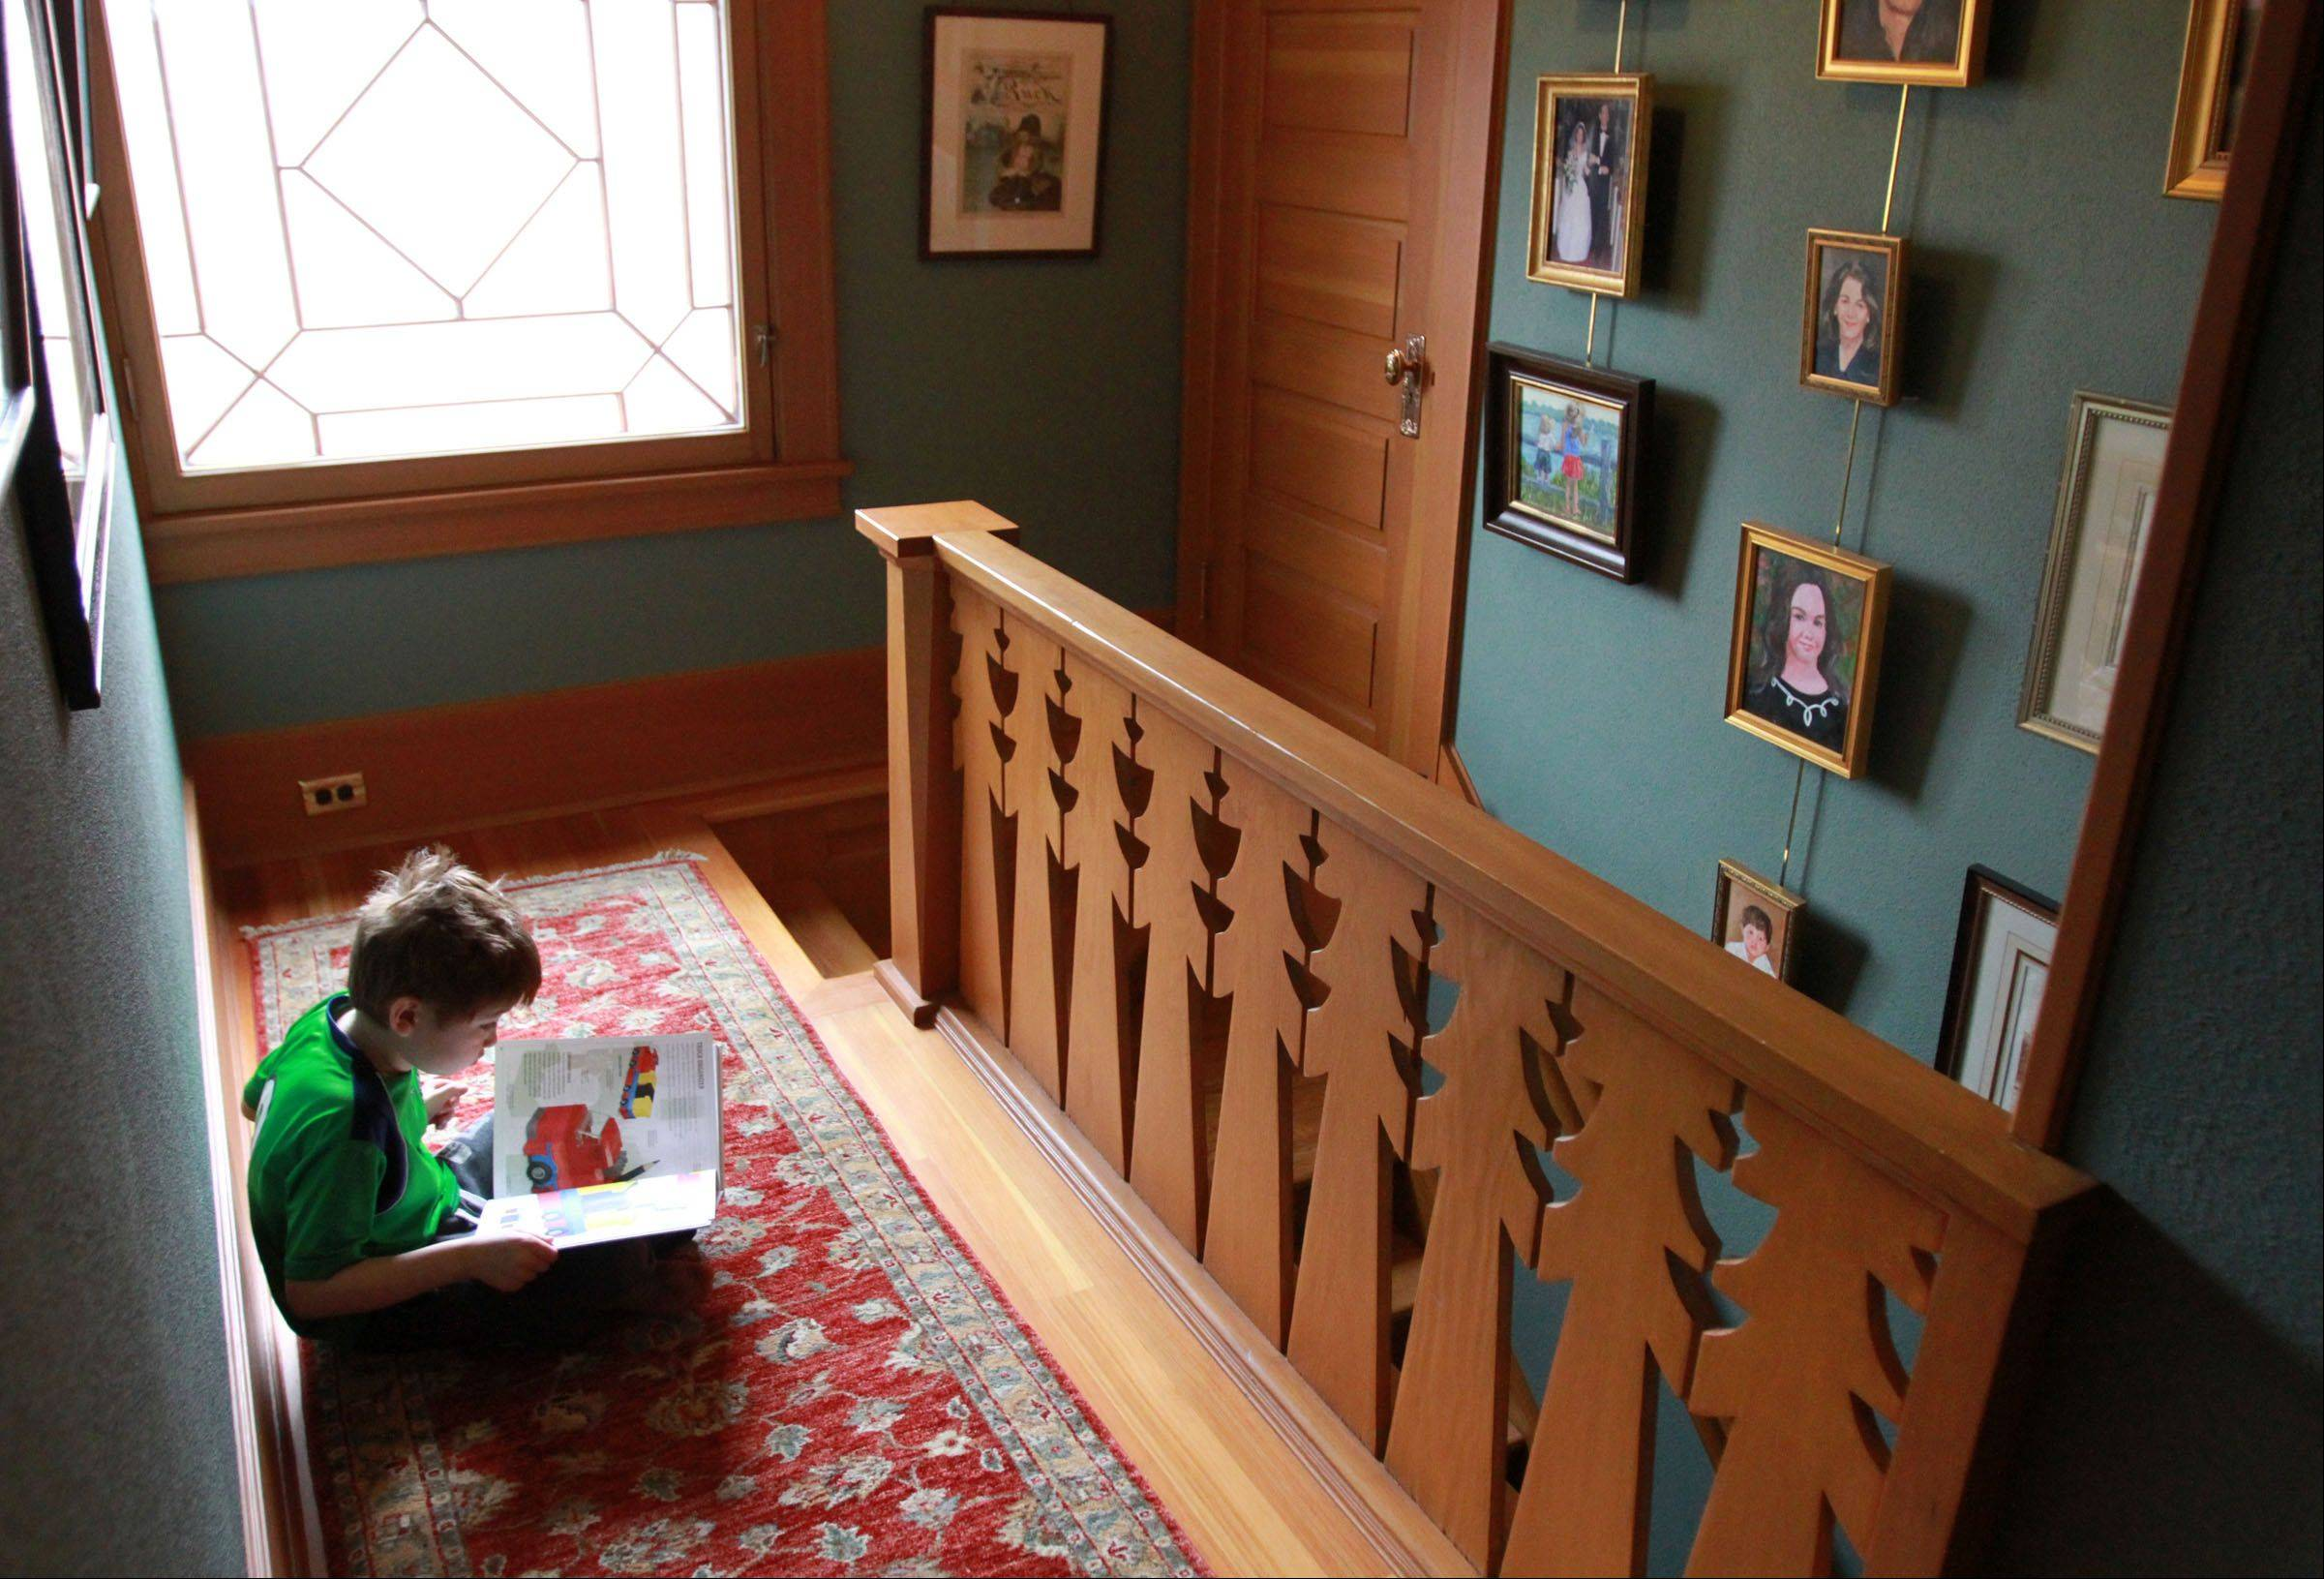 Mark Donovan and Mary Ludgin's son, Cooper Donovan, 7, reads by the tree-design staircase rail designed by Frank Lloyd Wright.